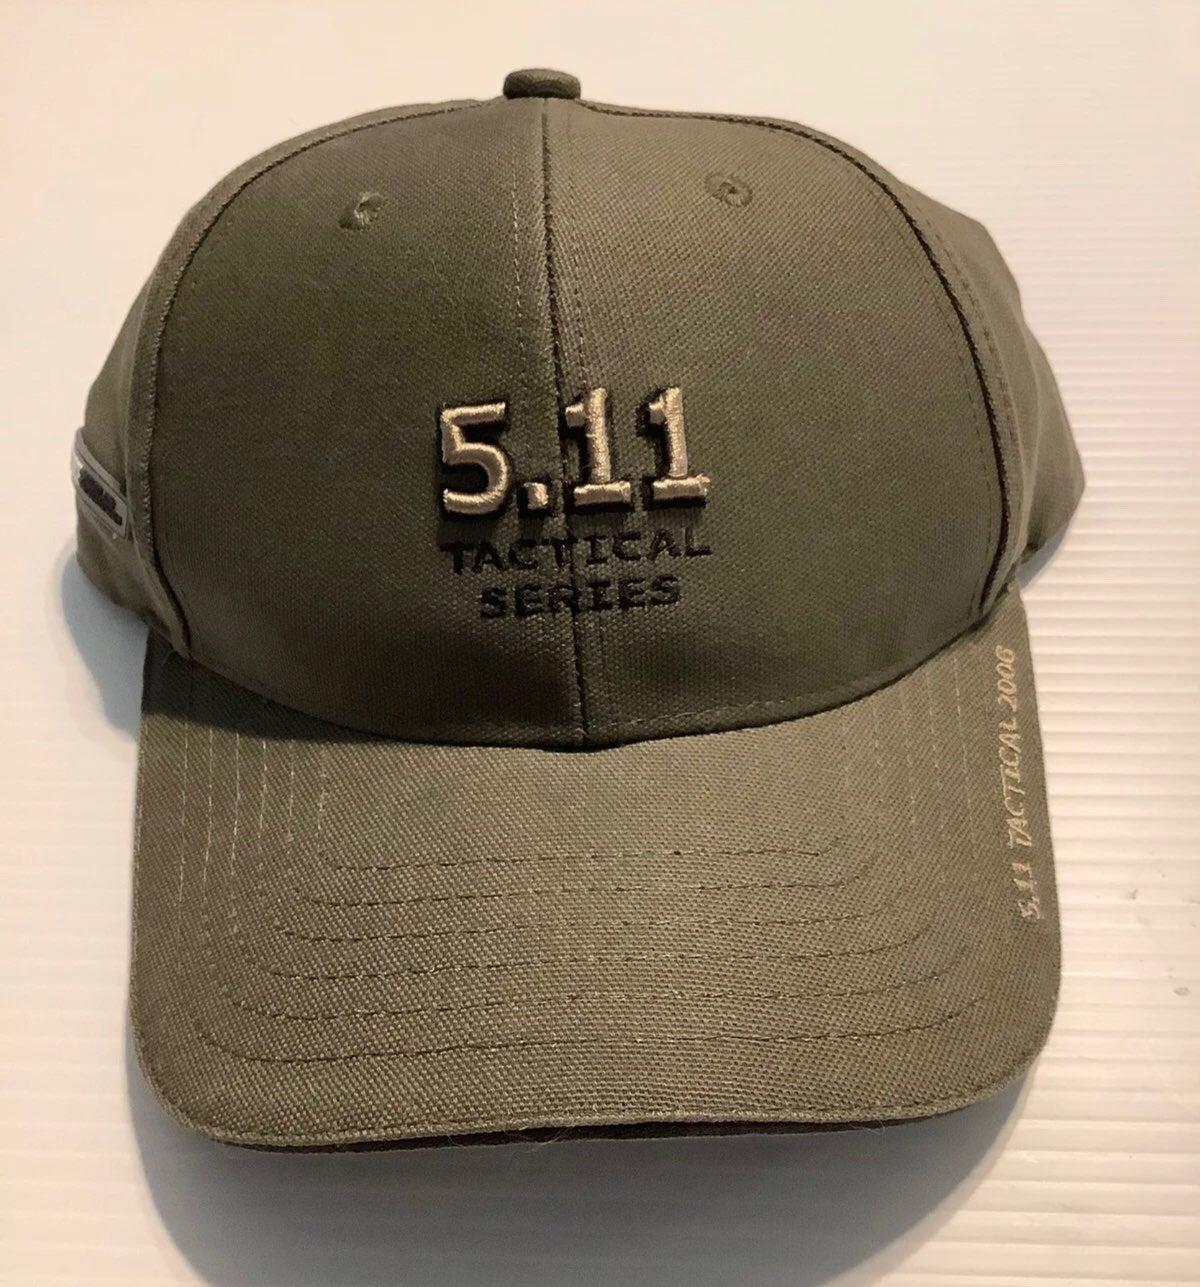 New old stock 5.11 Tactical Cap